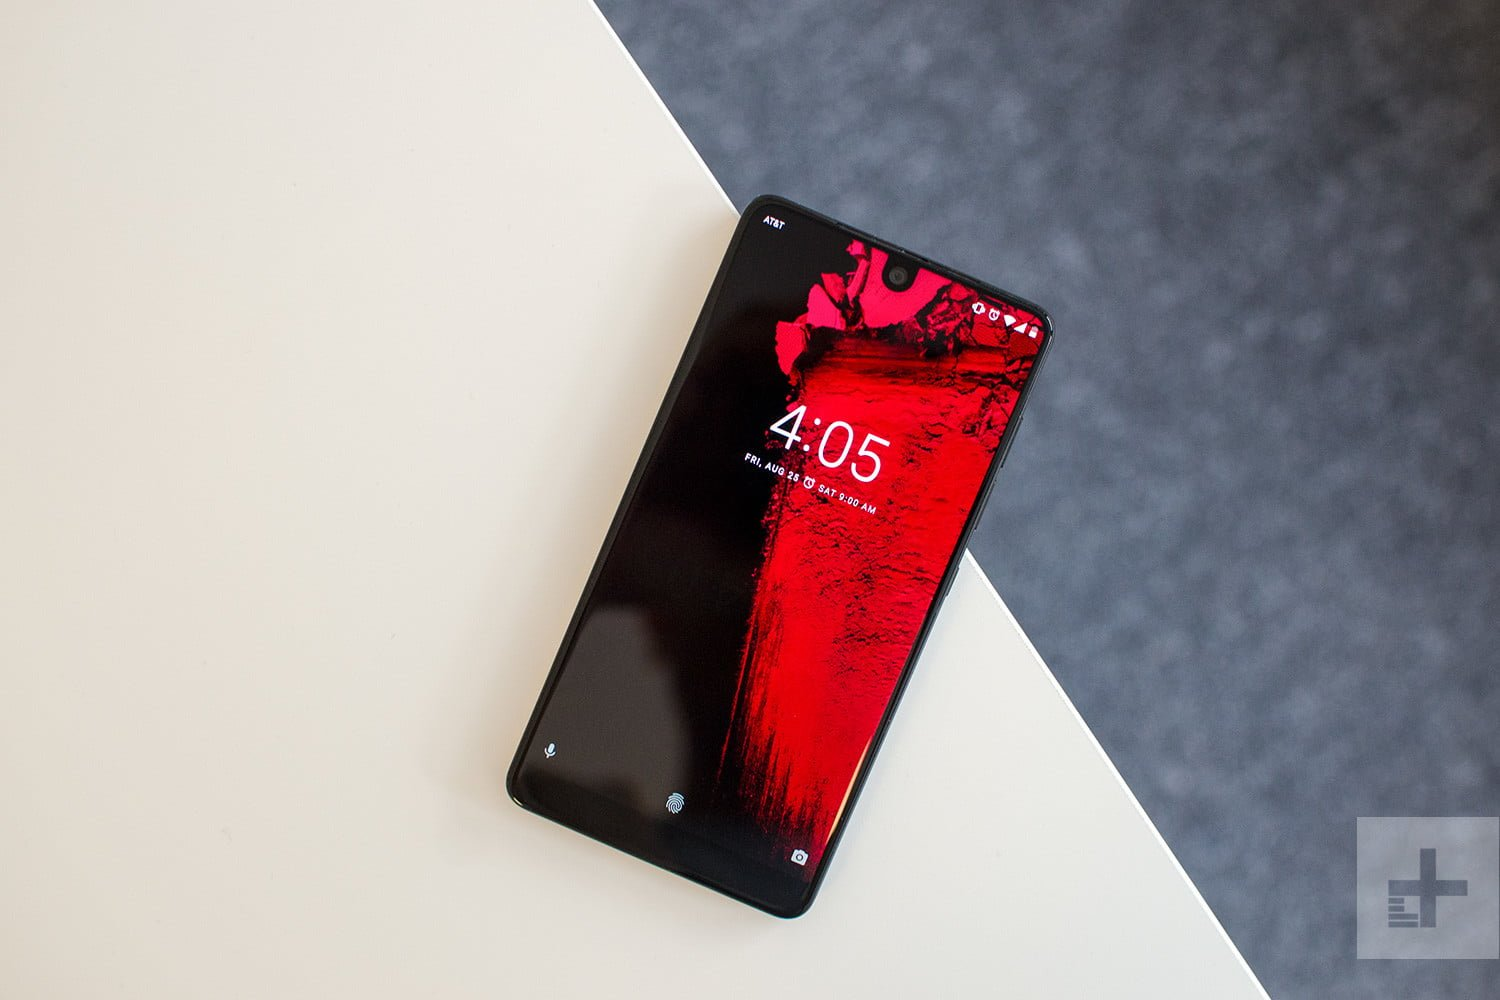 essential, essential phone, andy rubin, andy rubin essential, andy rubin essential phone